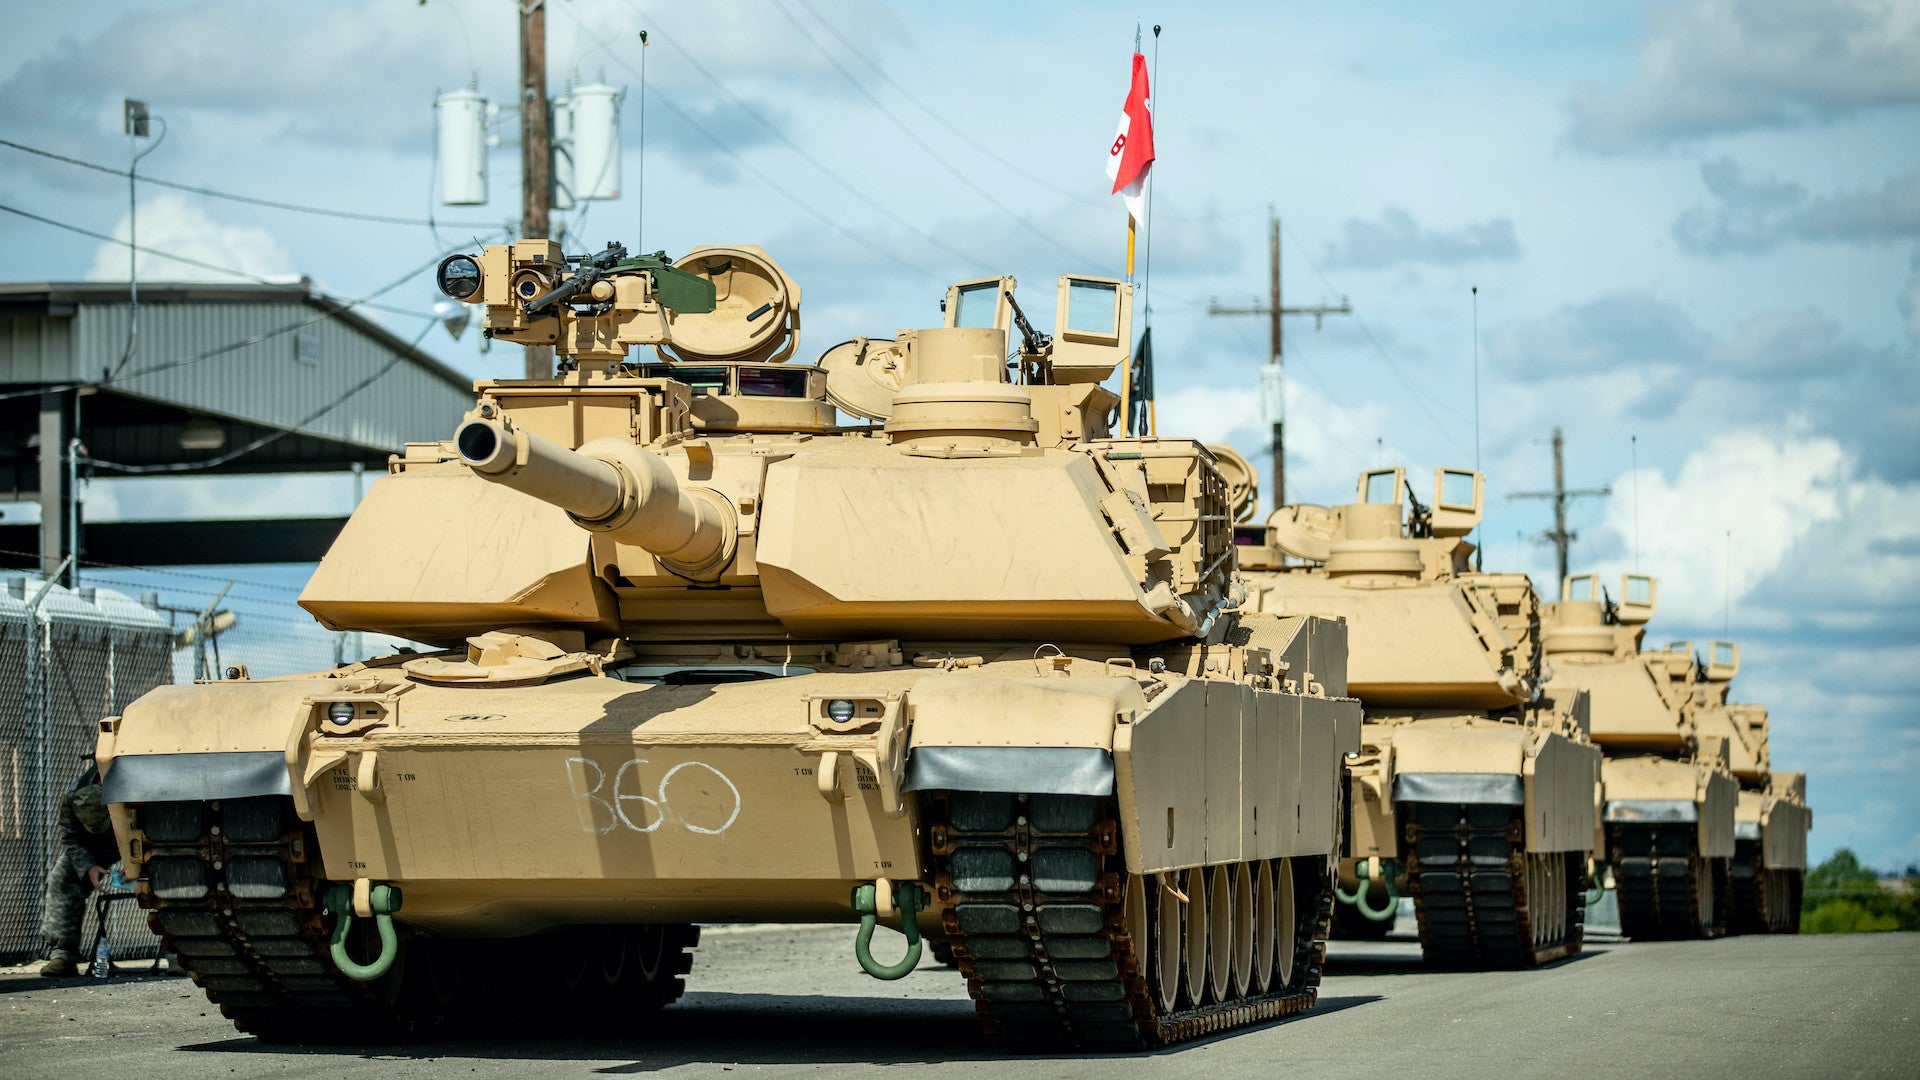 The Army is going all-in on its souped-up new M1 Abrams tank